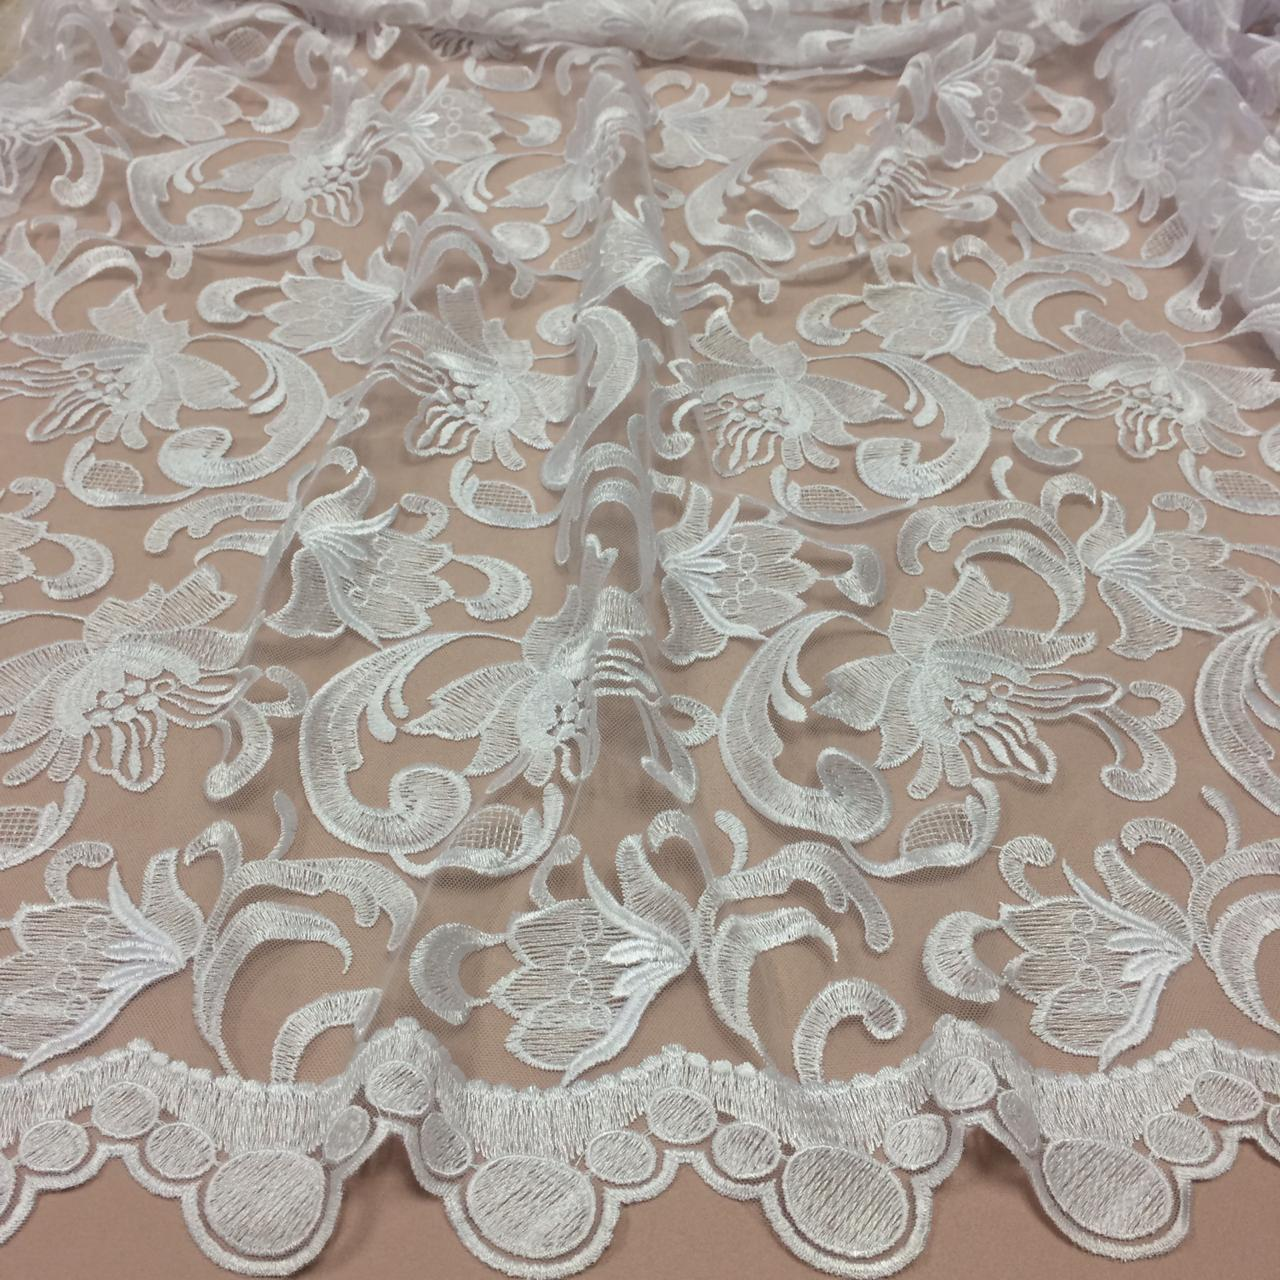 3cedcc4cd TECIDO RENDA TULE BORDADO BRANCO WEDDING